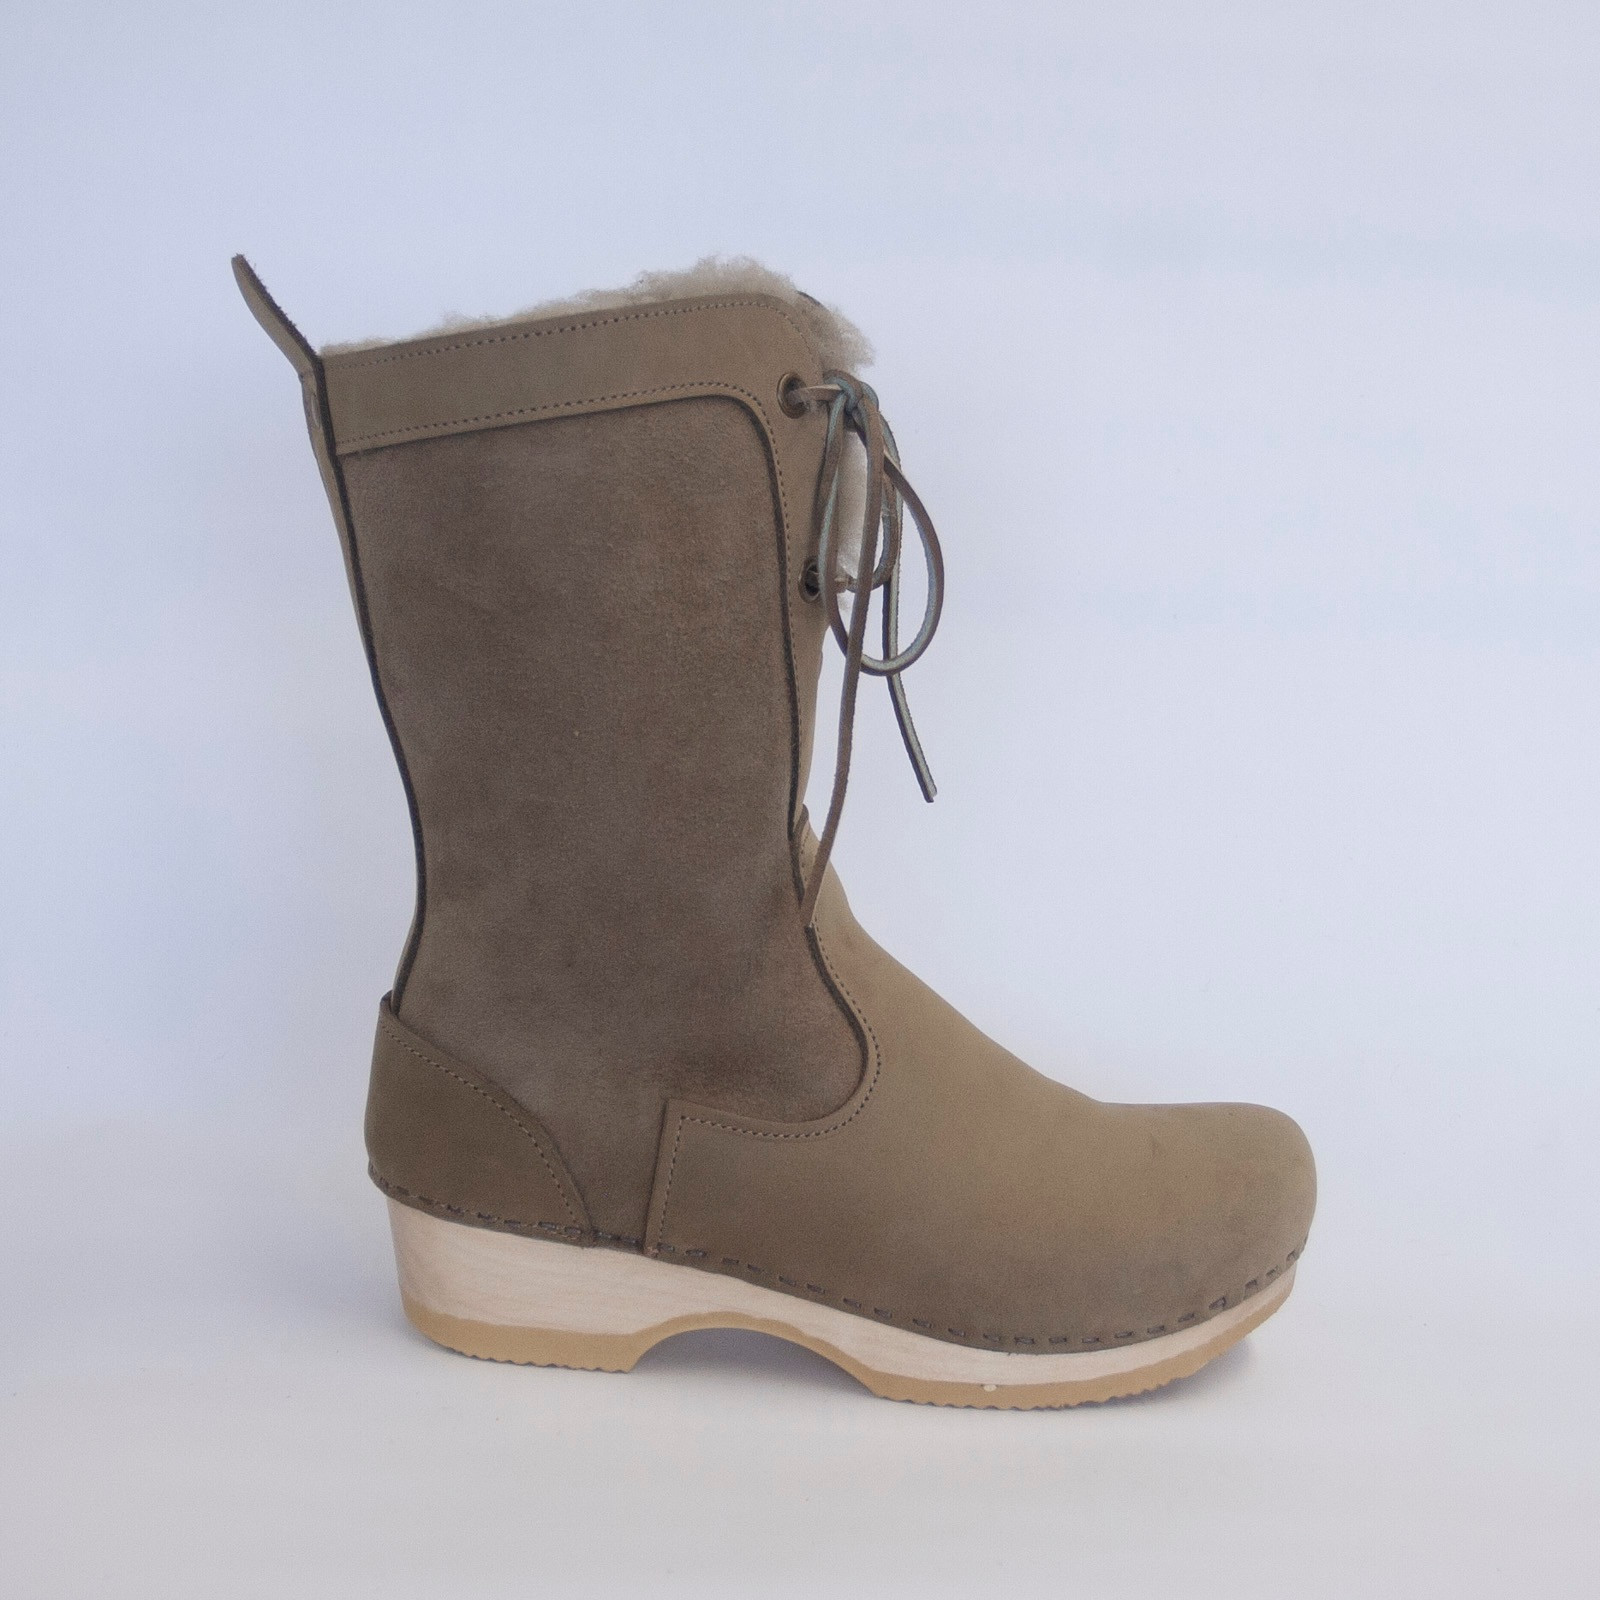 Taupe Shearling - Lace Up Shearling Clog Boots